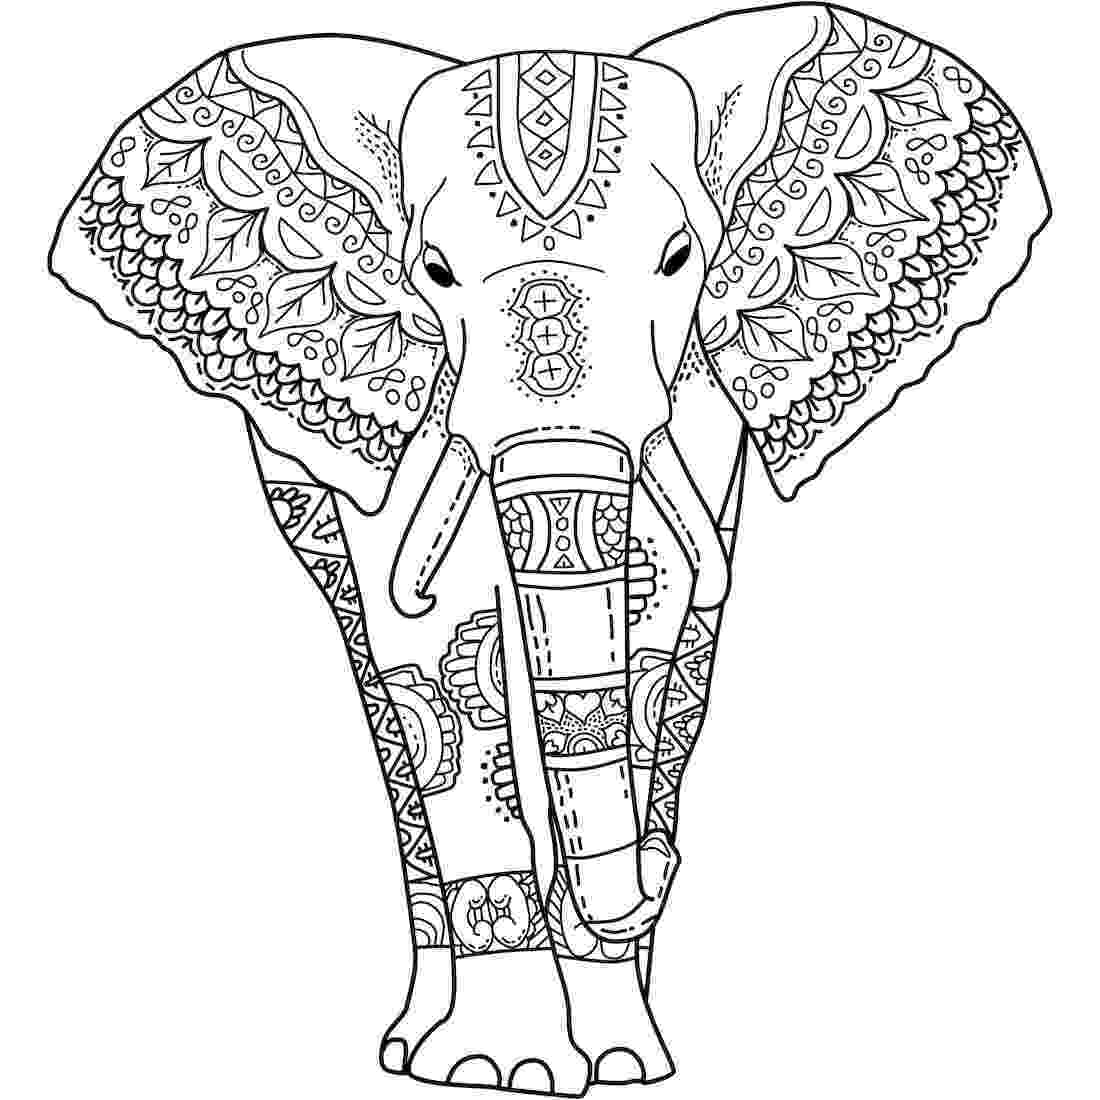 floral elephant coloring page the 24 best y blank pattern elephants images on pinterest elephant coloring floral page